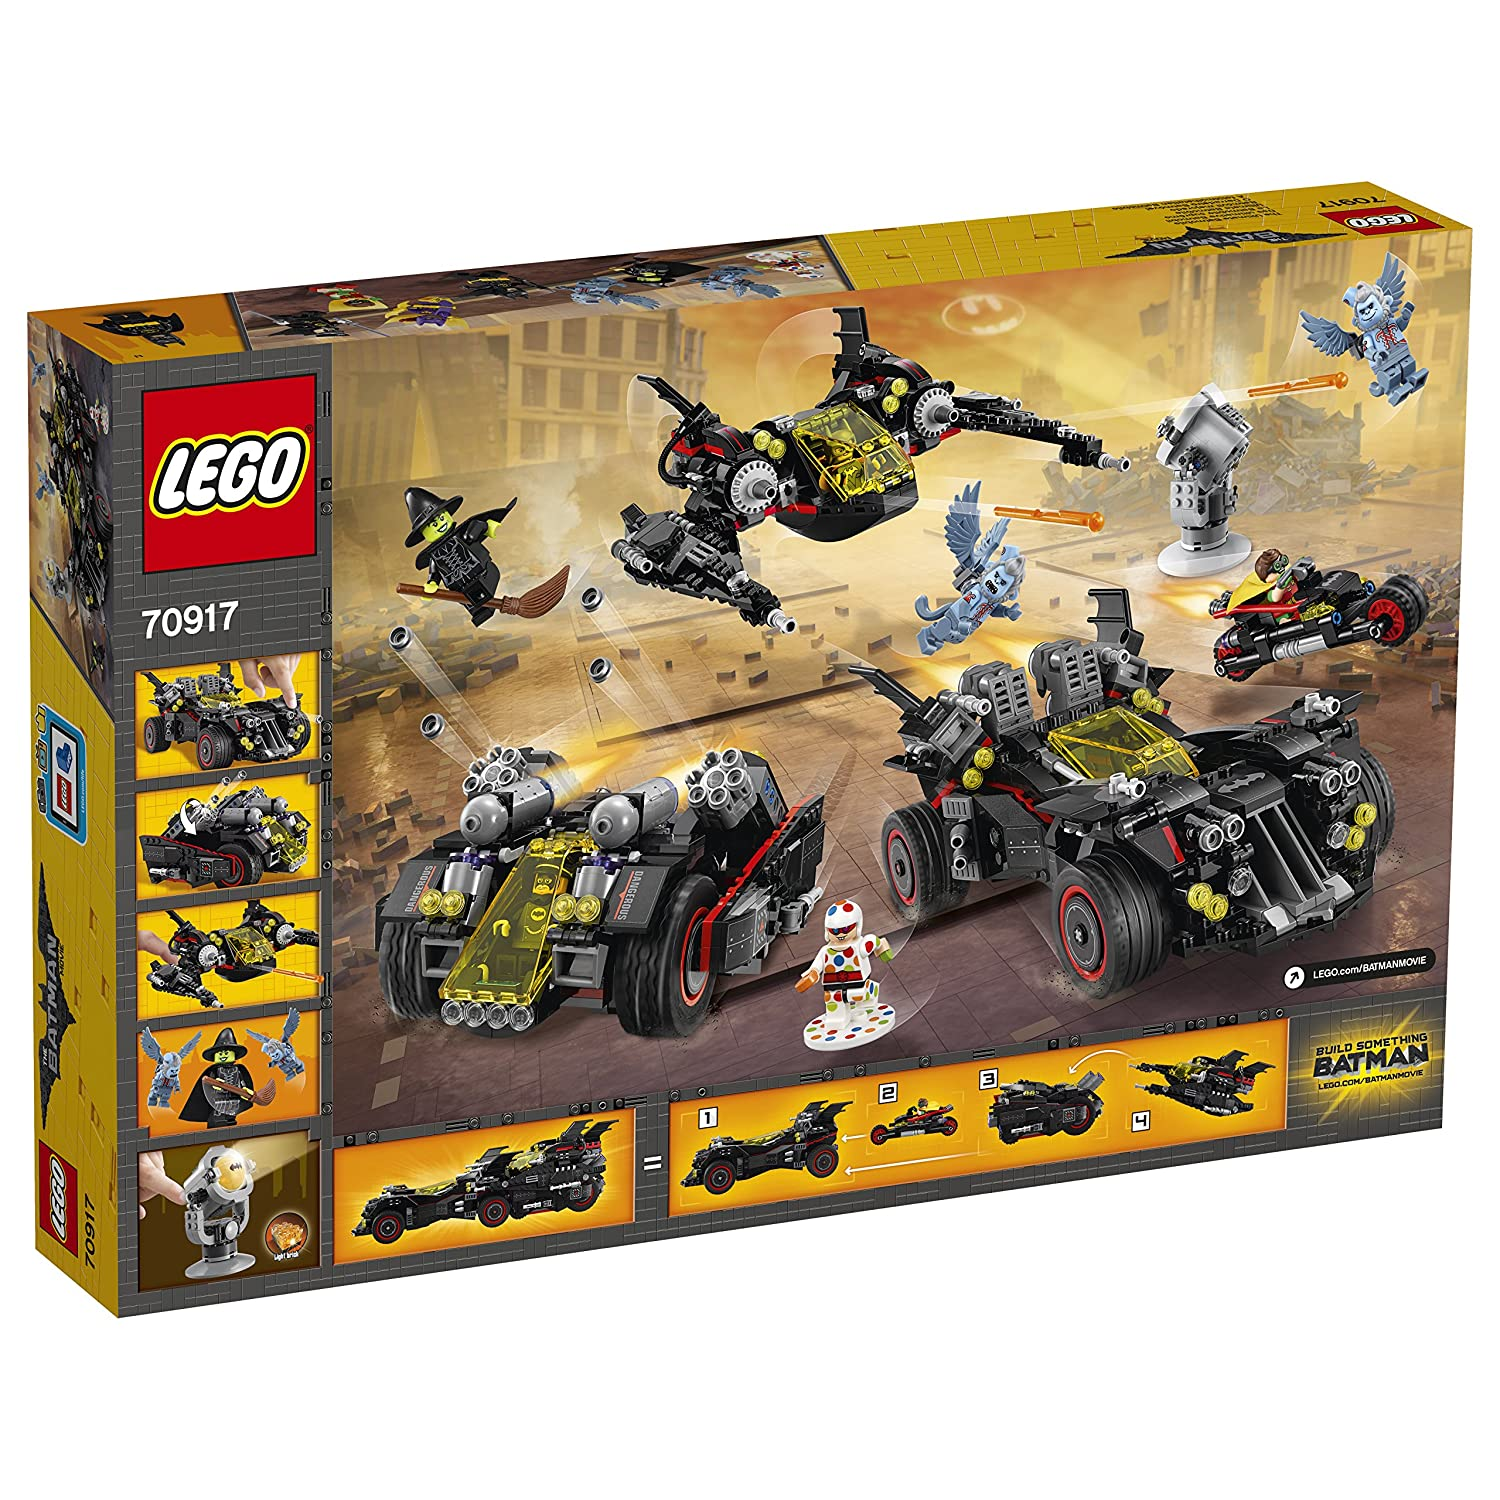 La Lego Suprême Construction Movie De Batman 70917 Jeu Batmobile BeWodrxC